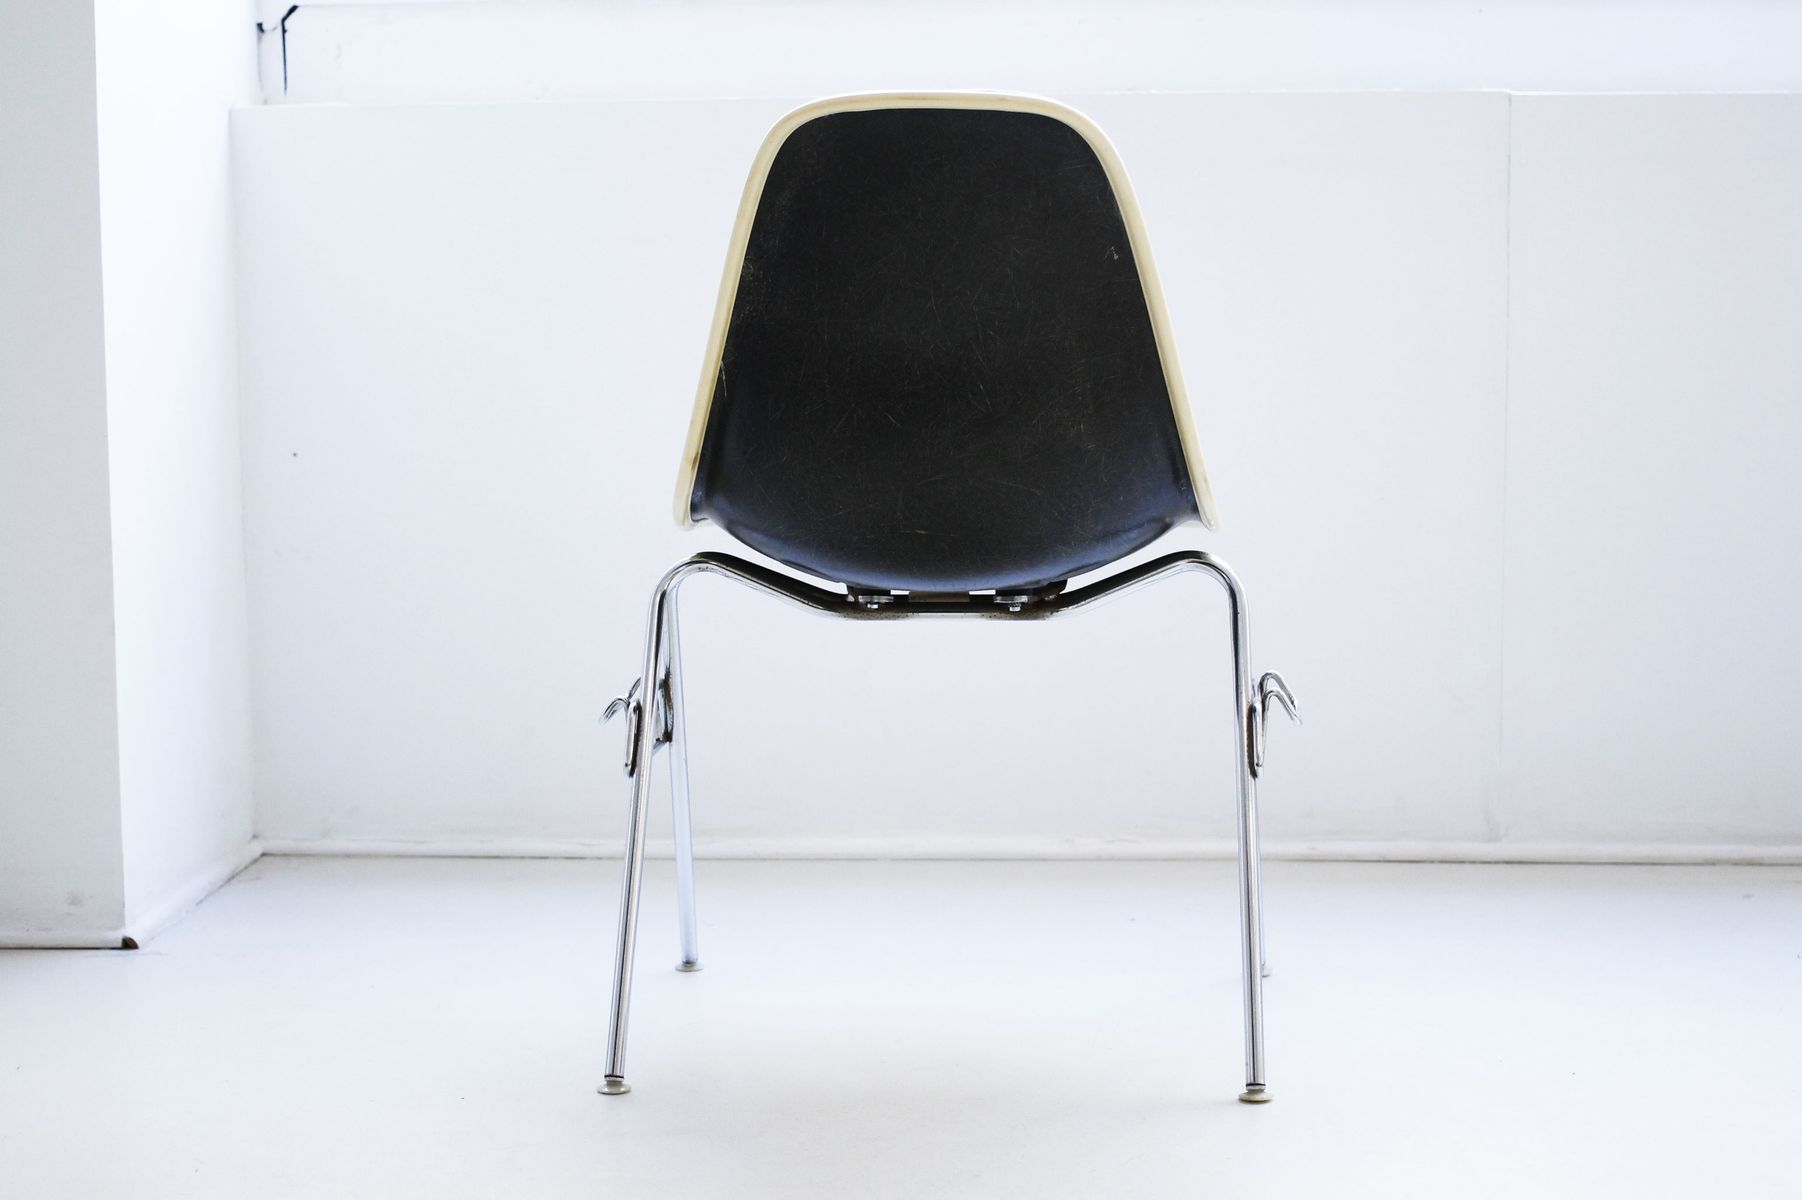 vintage dss chair by charles eames for herman miller for sale at